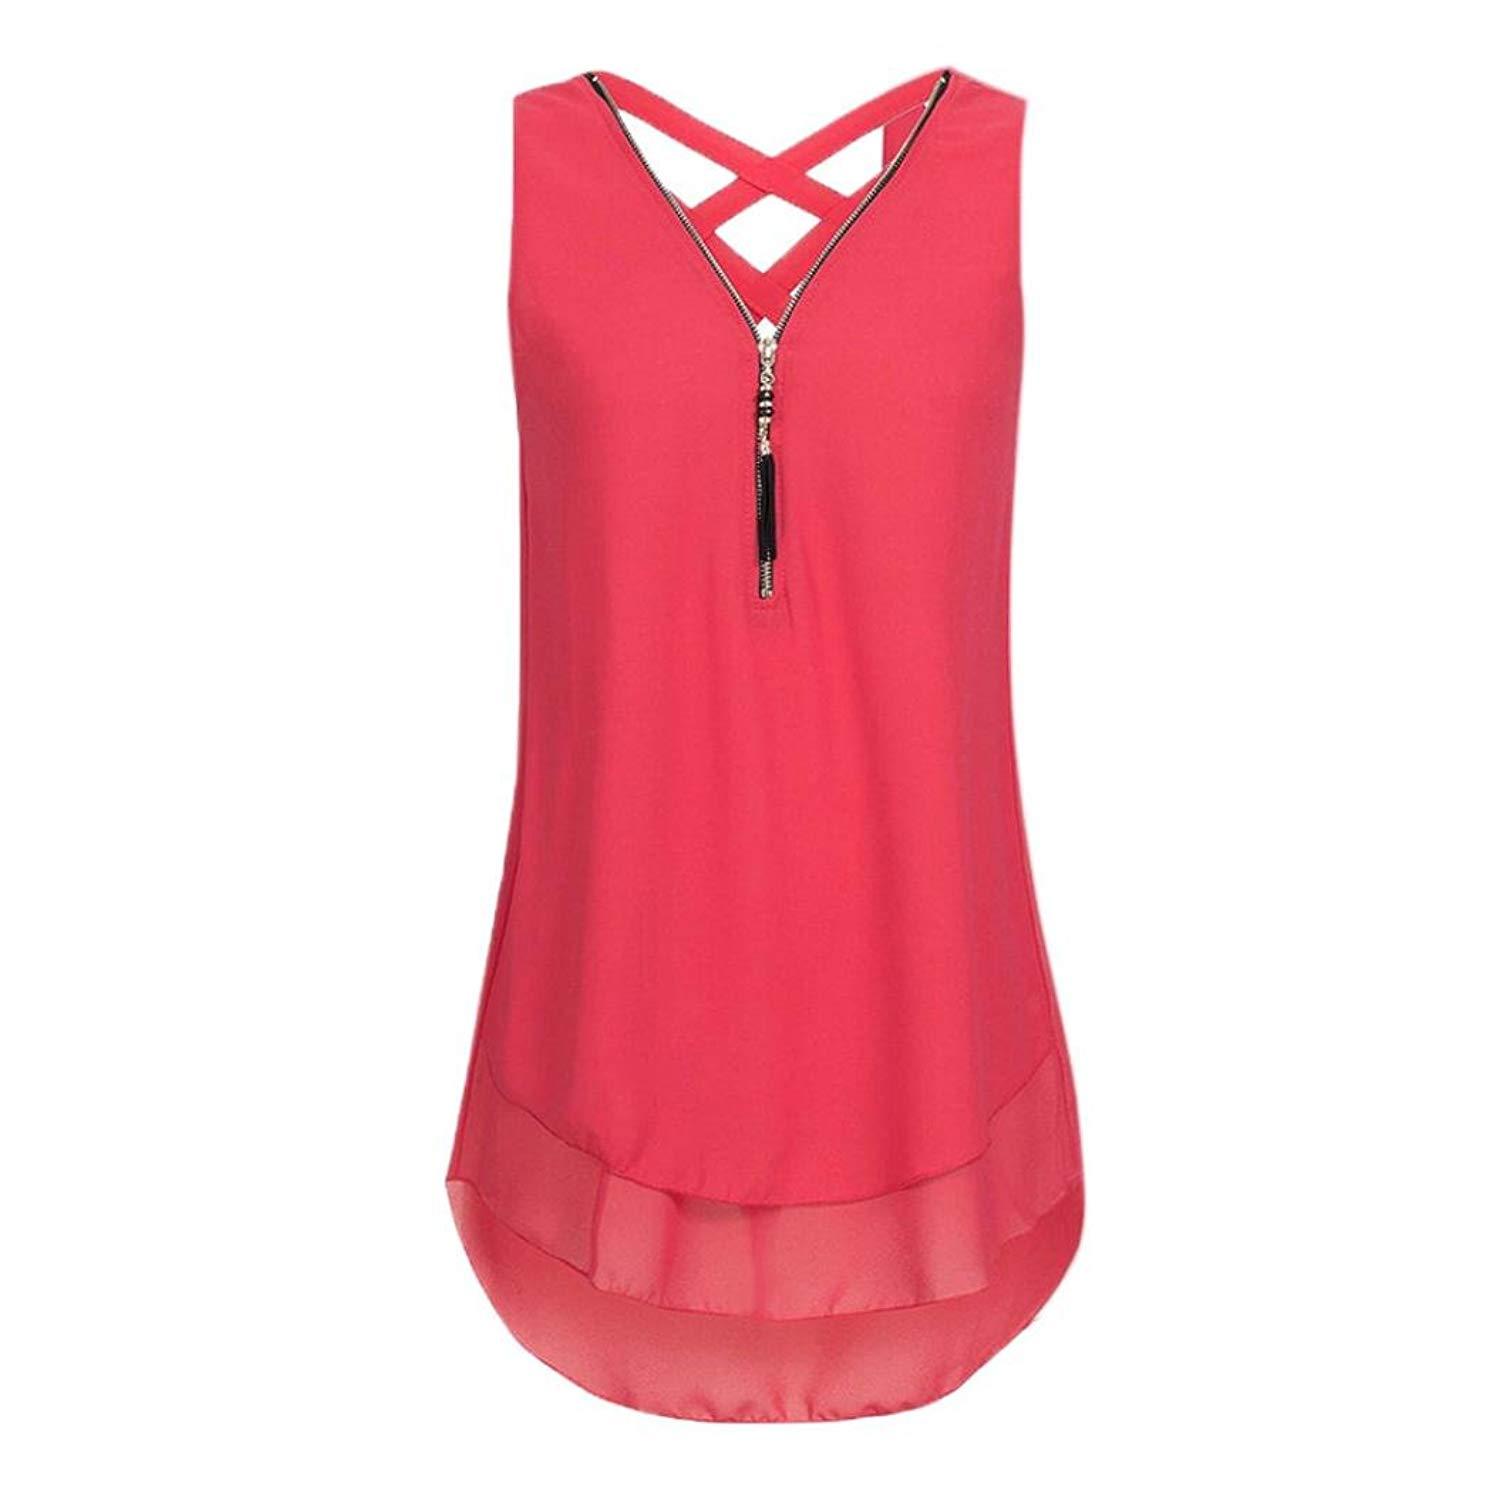 8af488b30eac0 Get Quotations · Staron Plus Size Womens Clothing Tops Zipper V Neck Cute  Criss Cross Back Loose Tank Tops